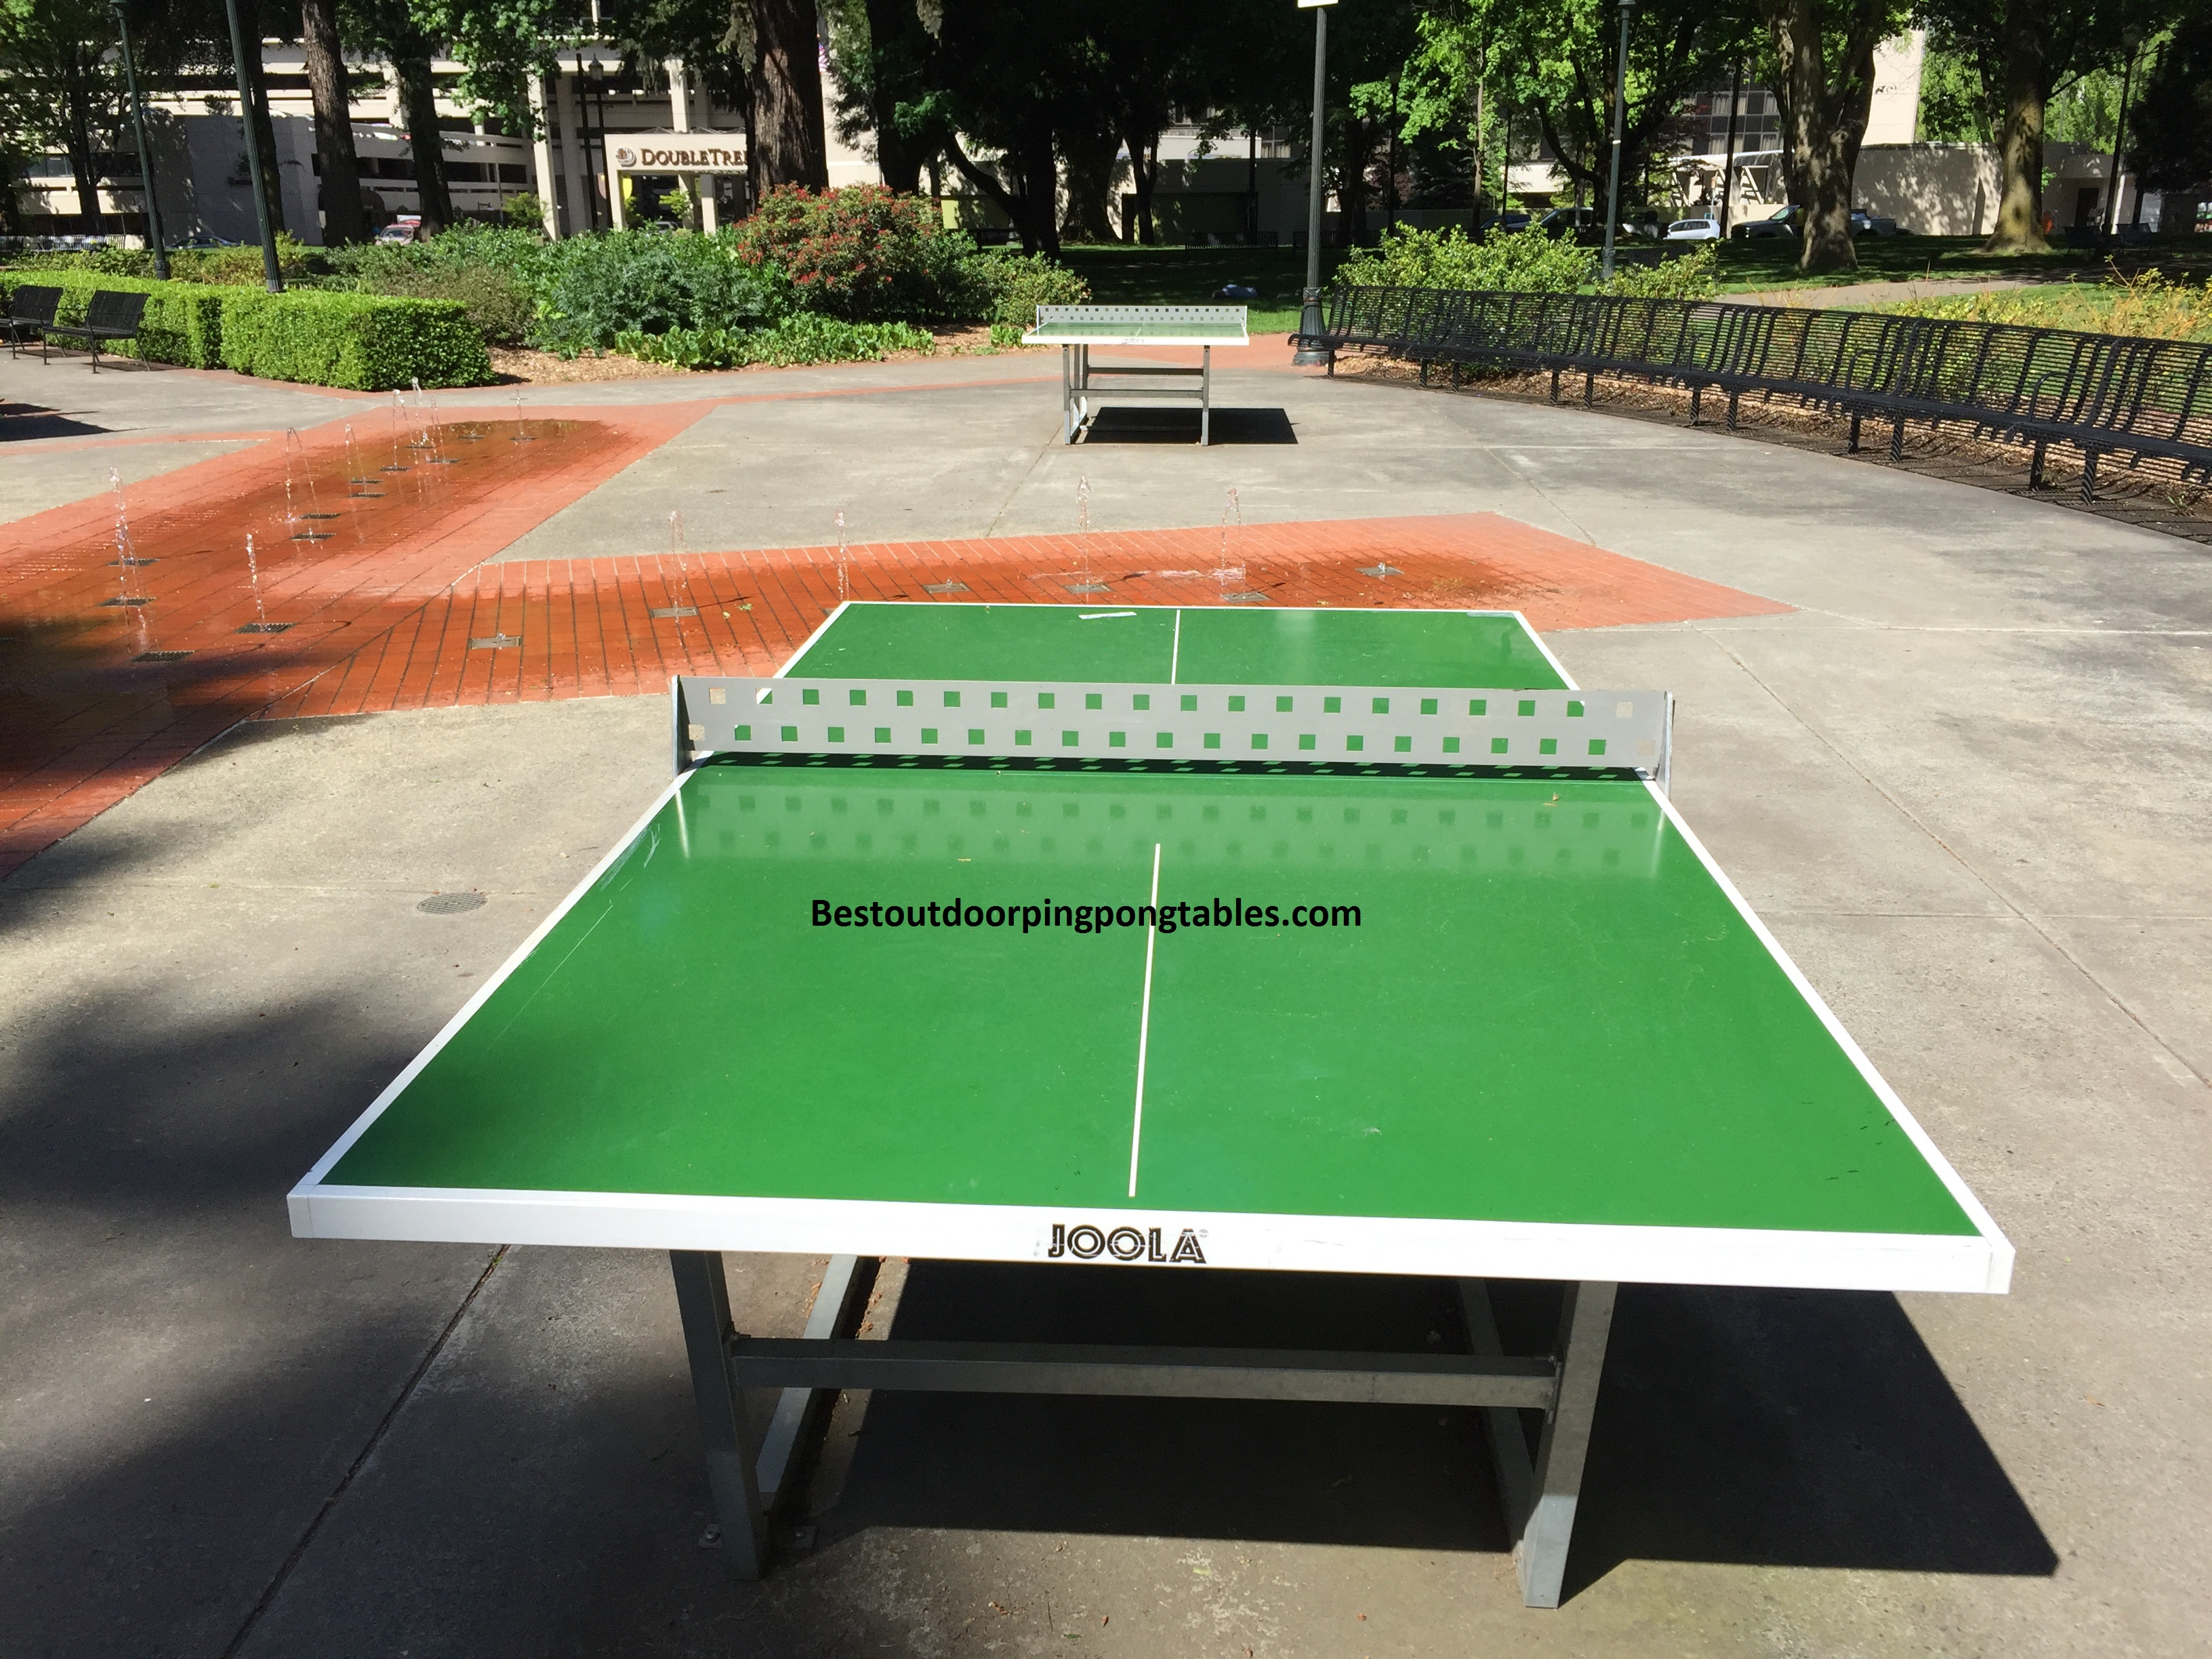 Weatherproof Ping Pong Table Outdoor Ping Pong Tables in Portland, Oregon: